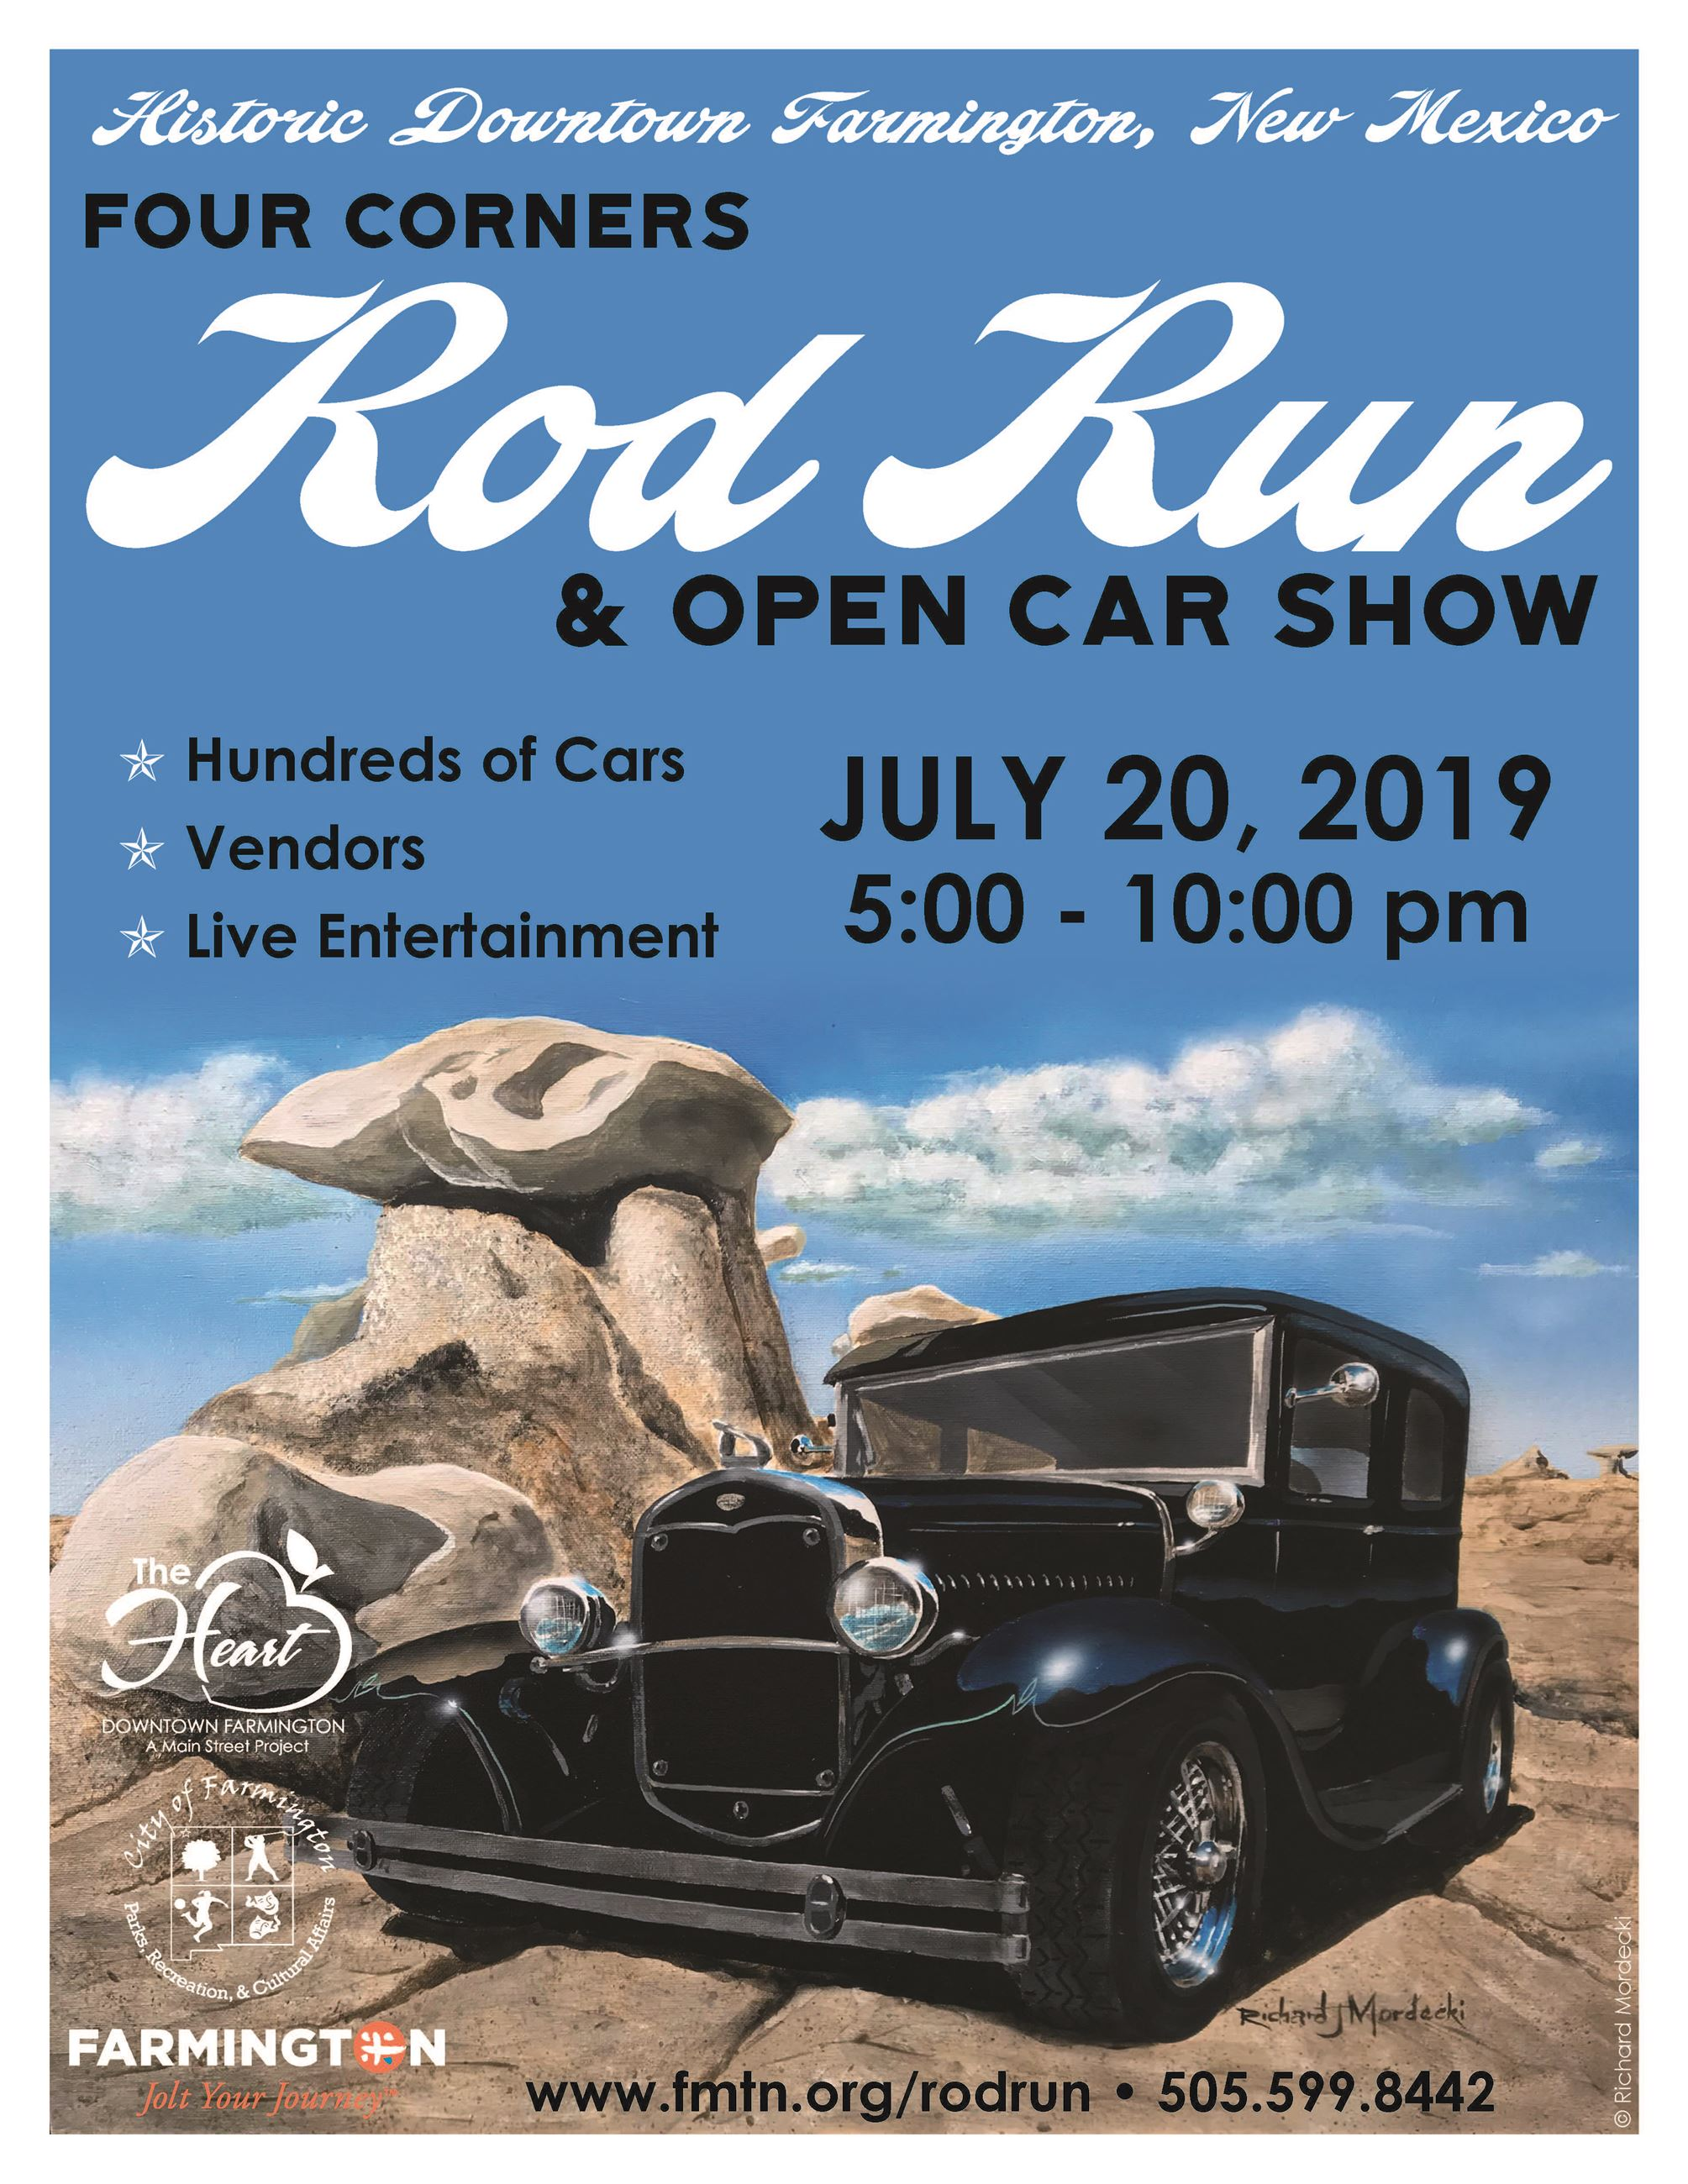 2019 Rod Run Flyer_Page_1